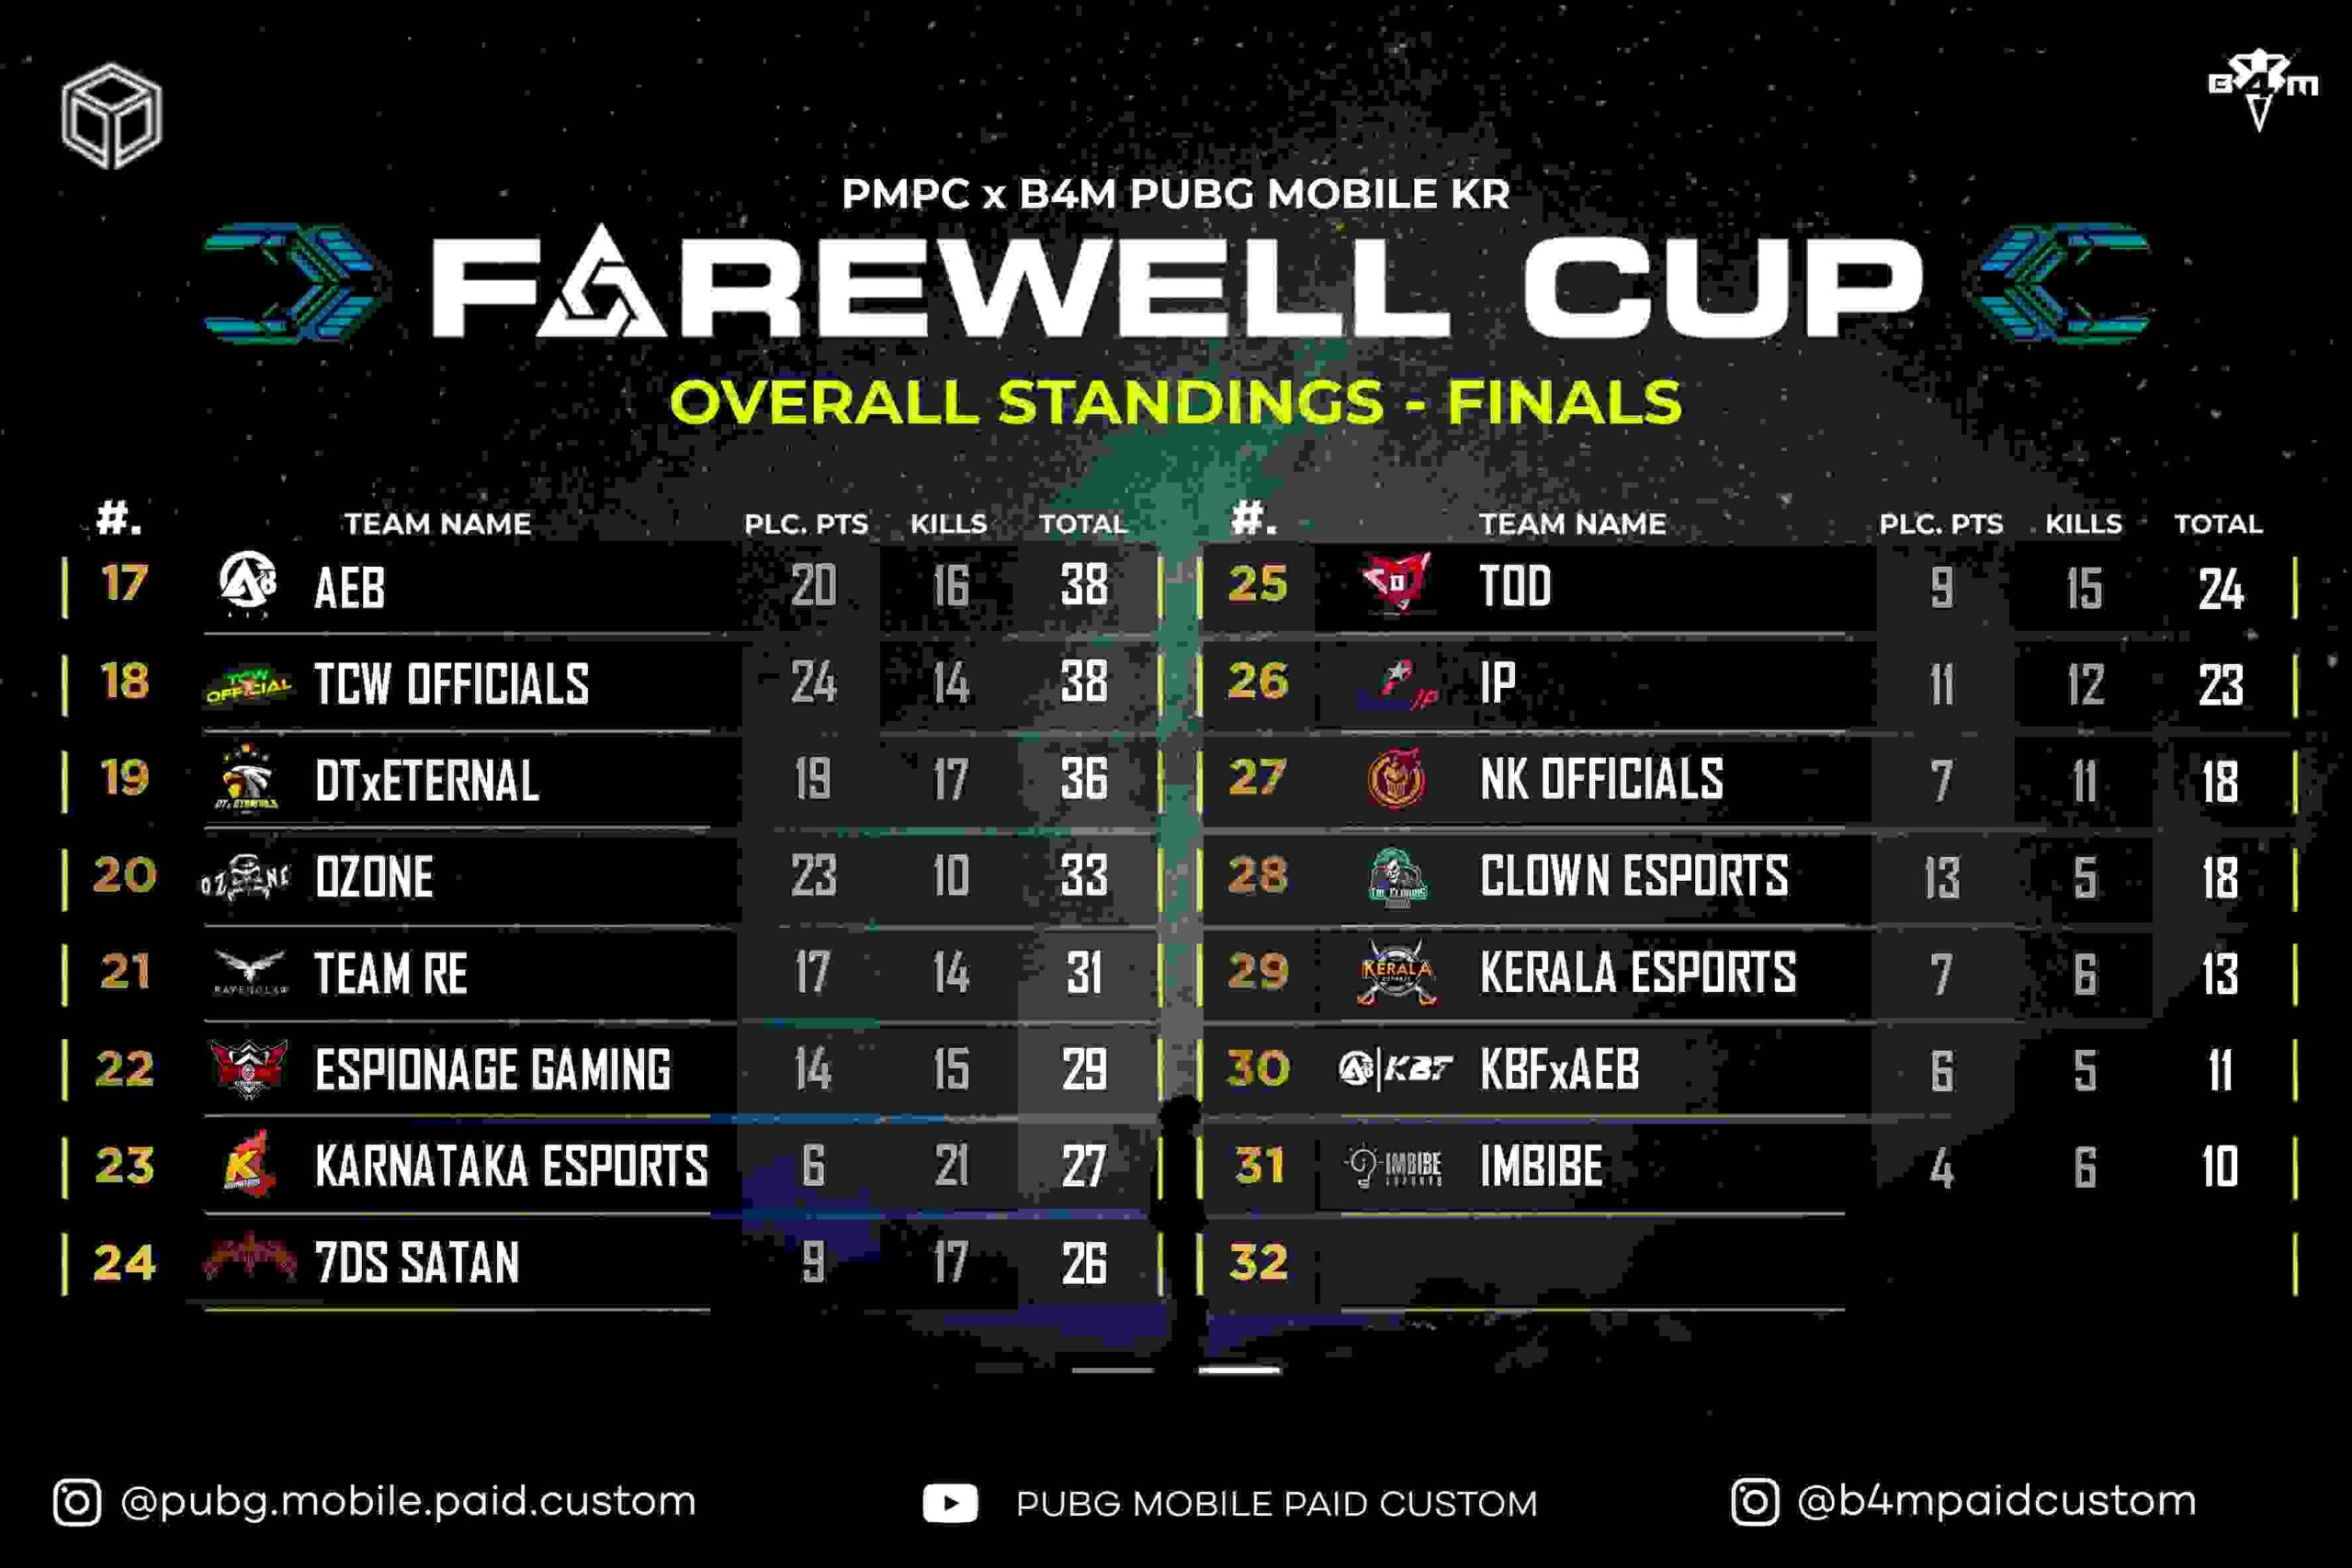 Pubg Mobile Farerwell Cup Overall Standings